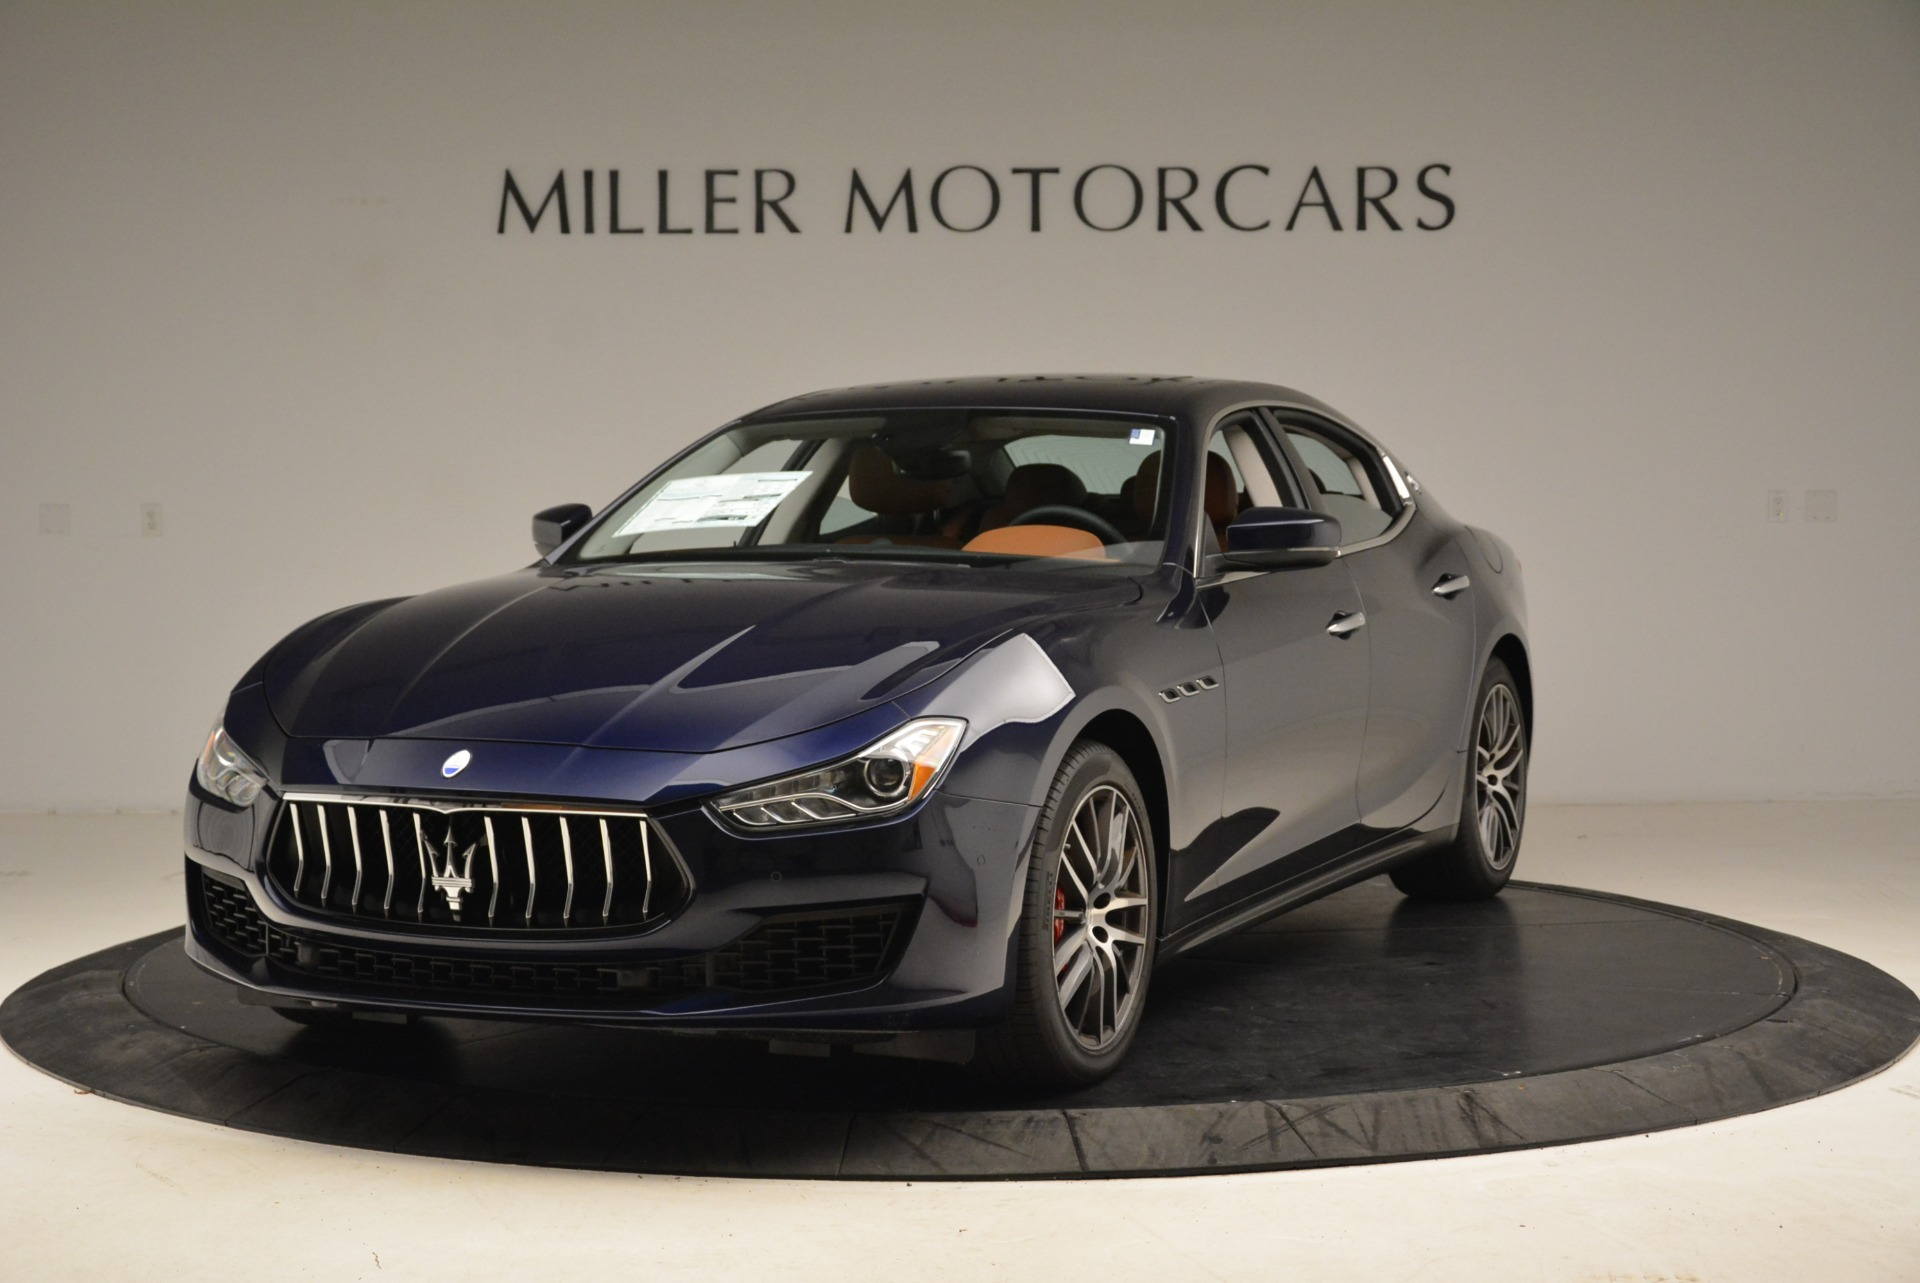 Used 2019 Maserati Ghibli S Q4 for sale $57,900 at Pagani of Greenwich in Greenwich CT 06830 1